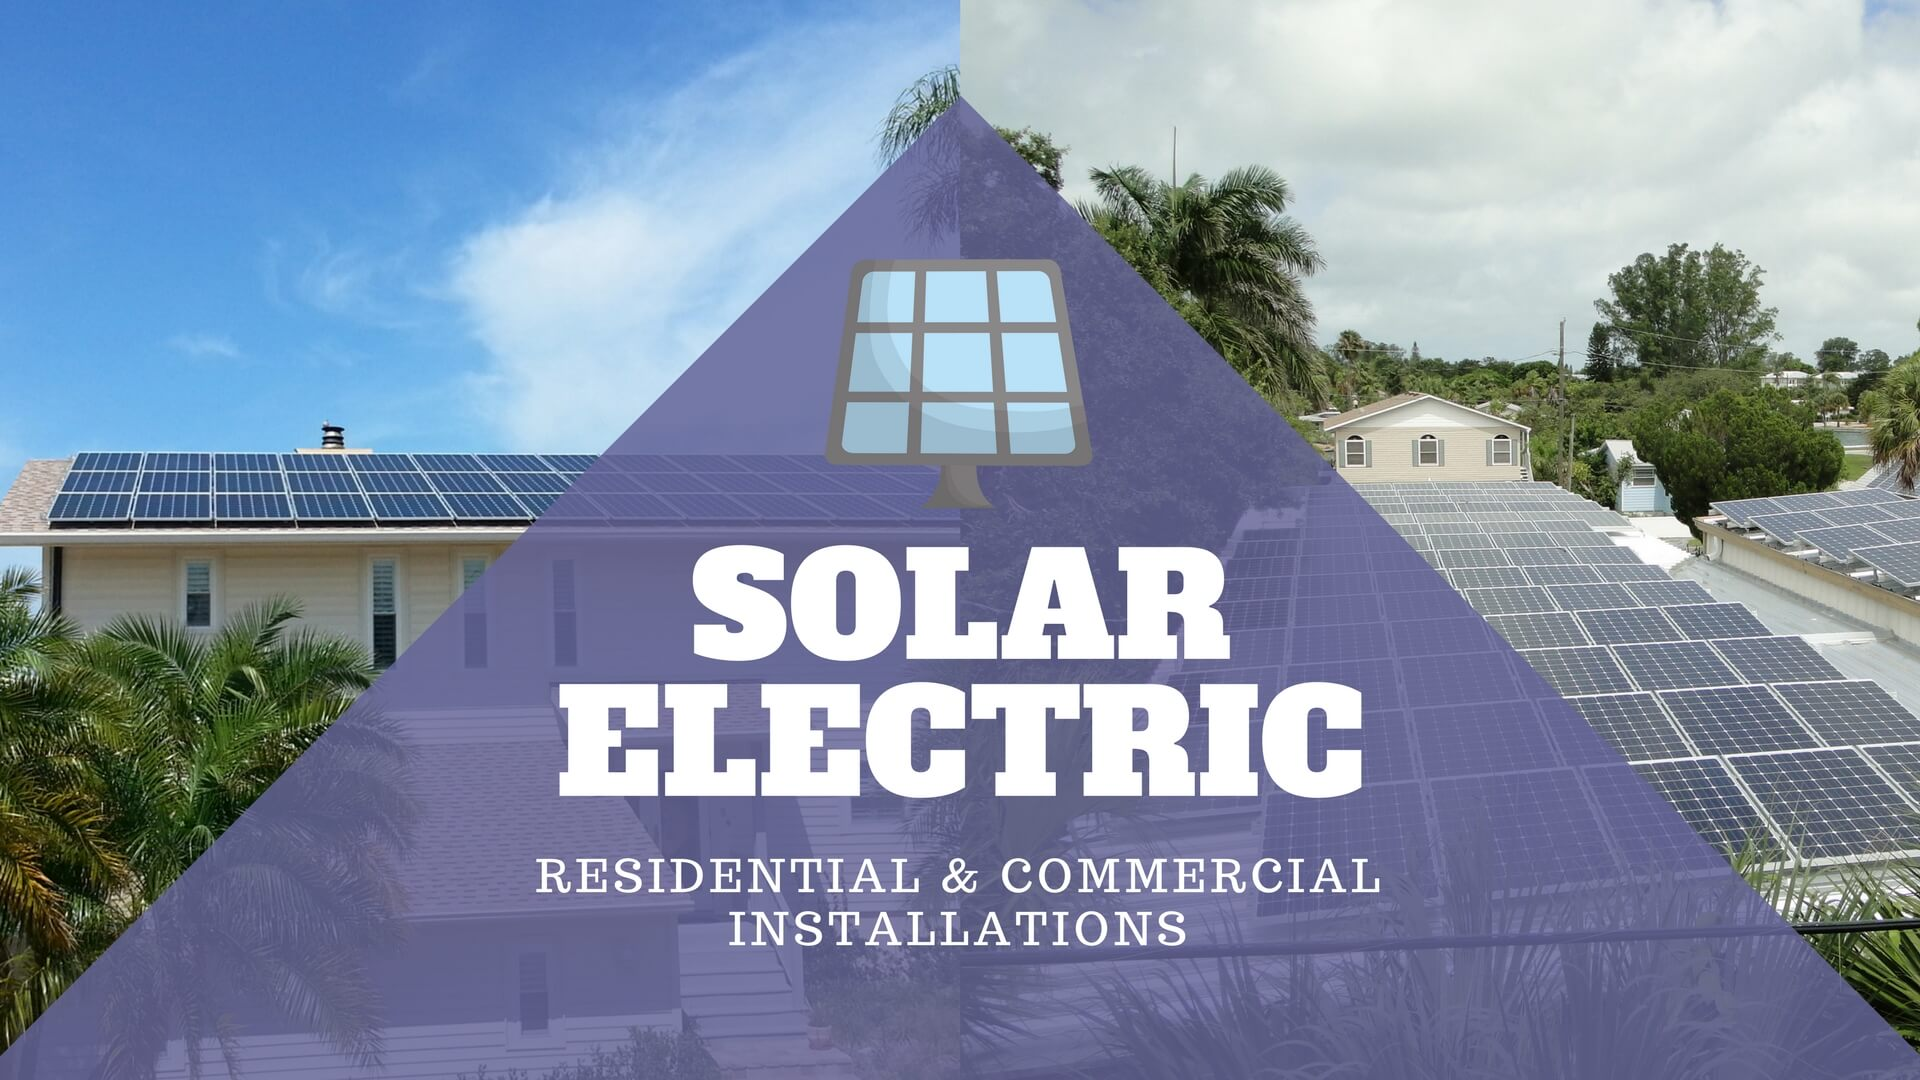 Solar Electric, Residential and Commercial Solar Electric Equipment and Installation Services